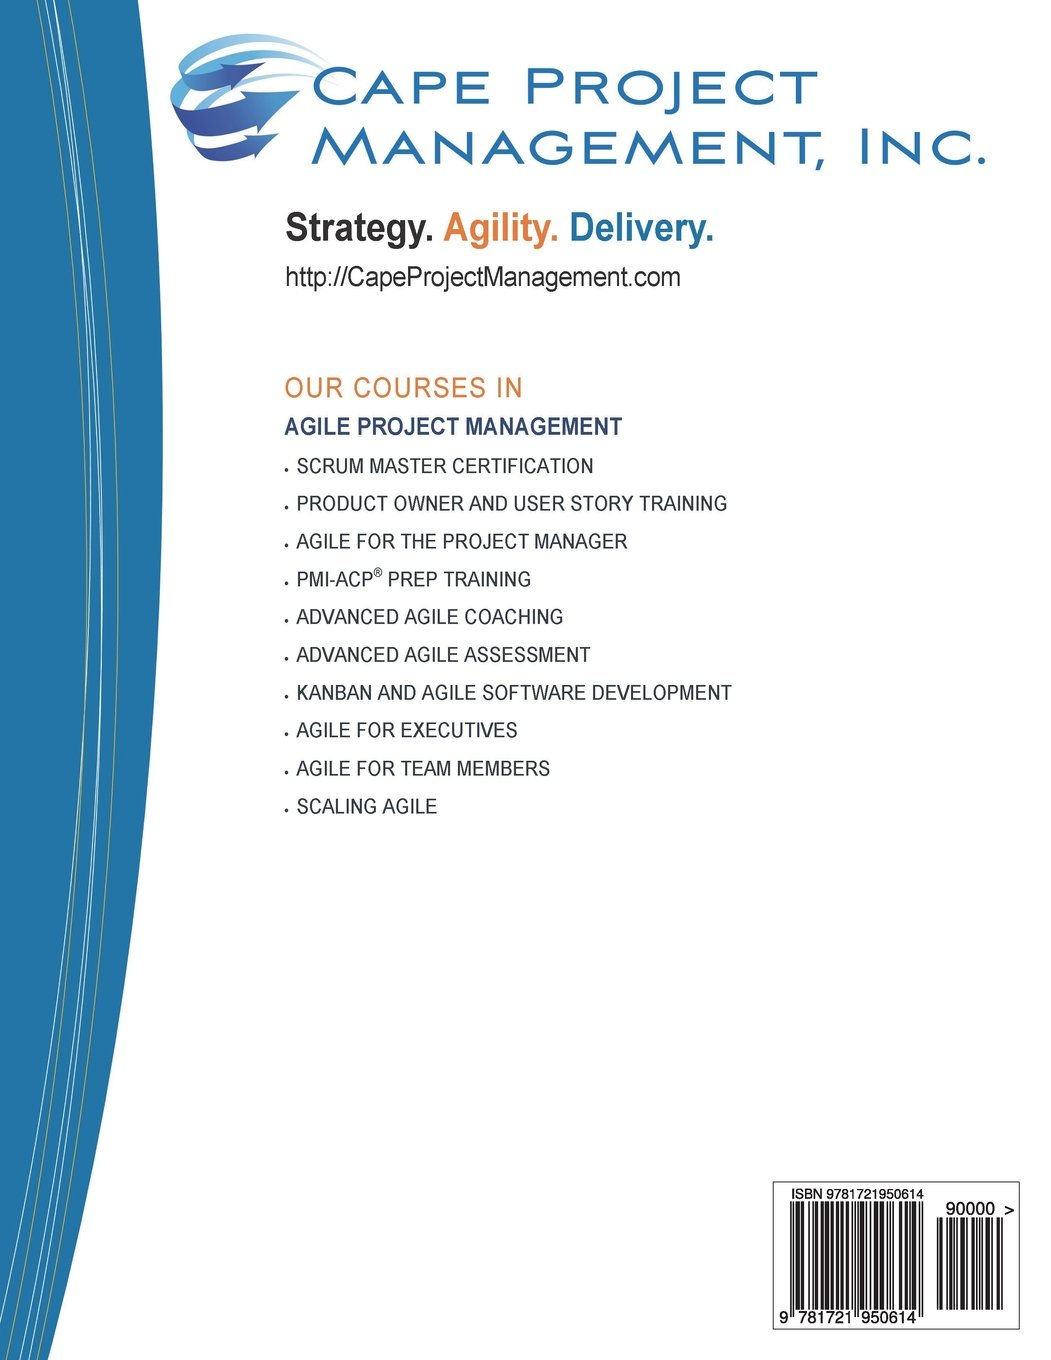 Agile Project Management For Scrum Teams Training In The Effective